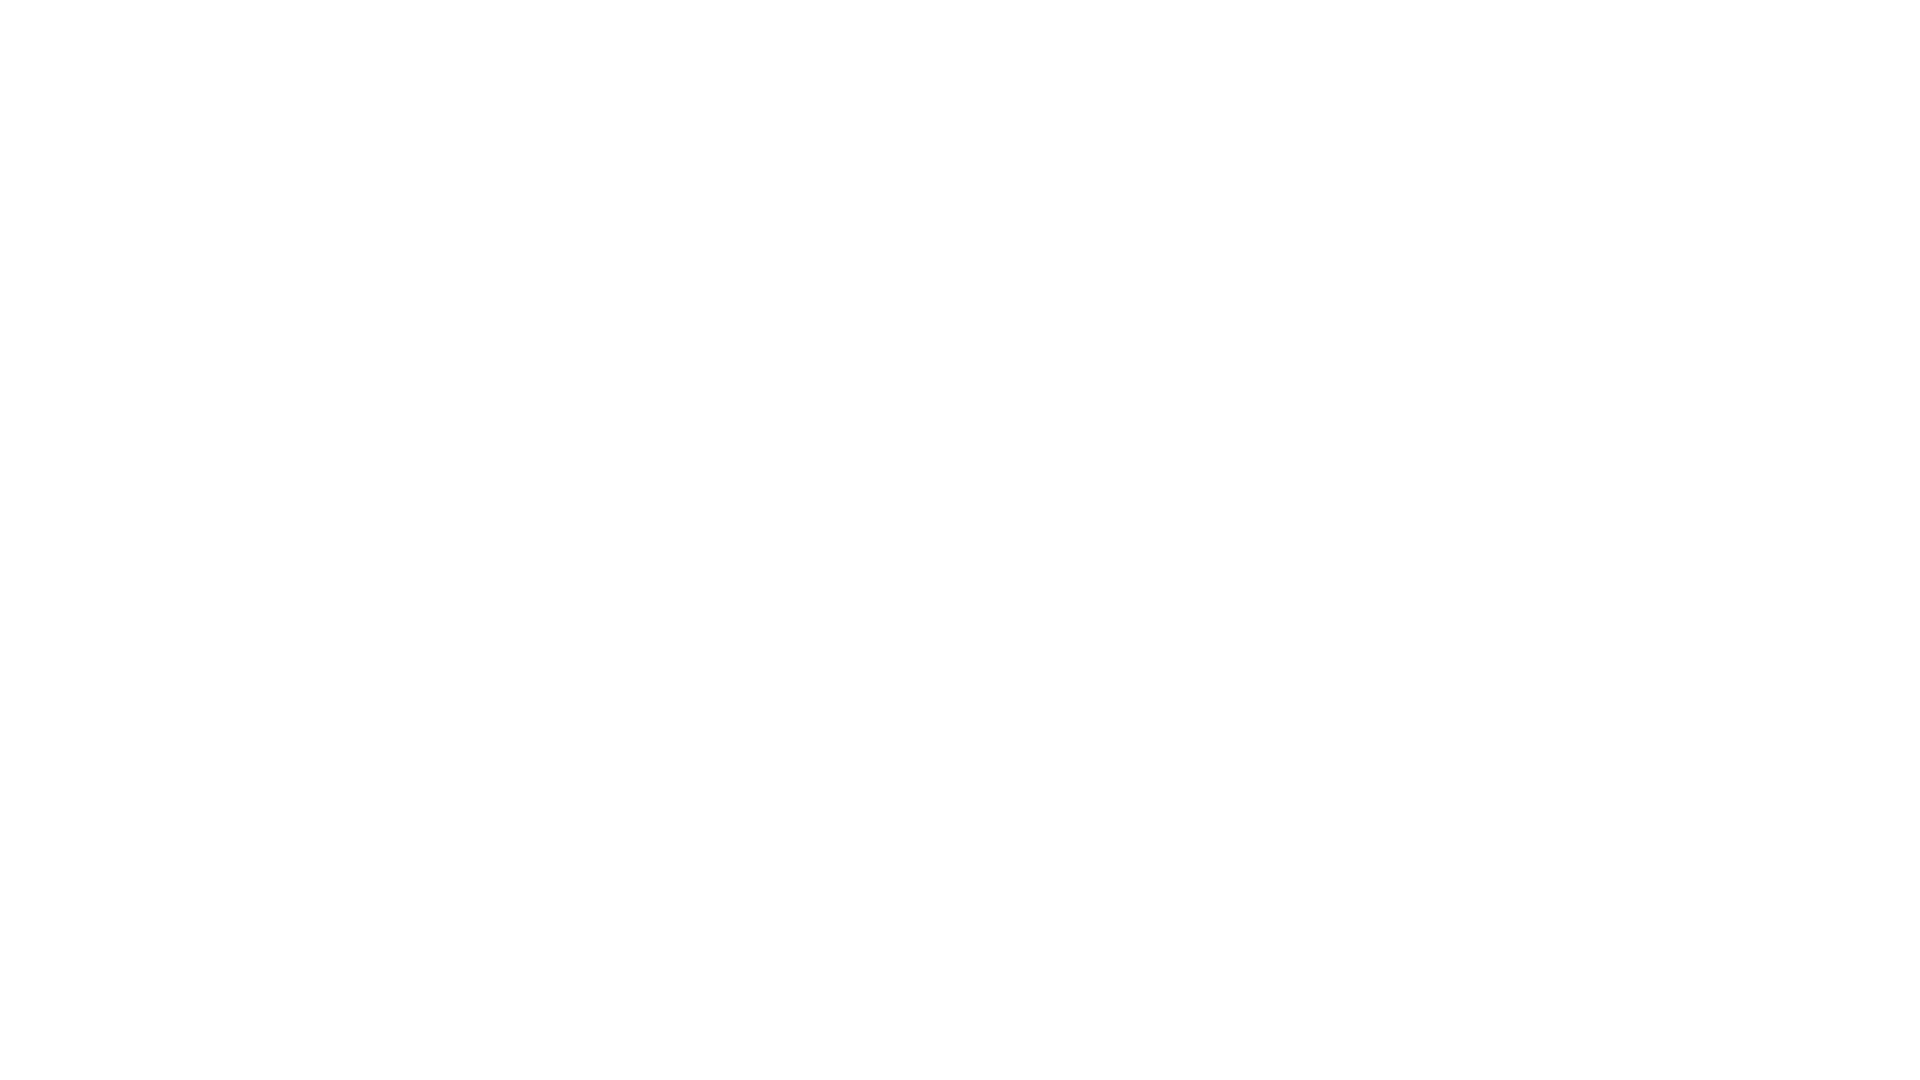 https://urbansport.co.nz/wp-content/uploads/2019/06/Timetable-1920x1080.png